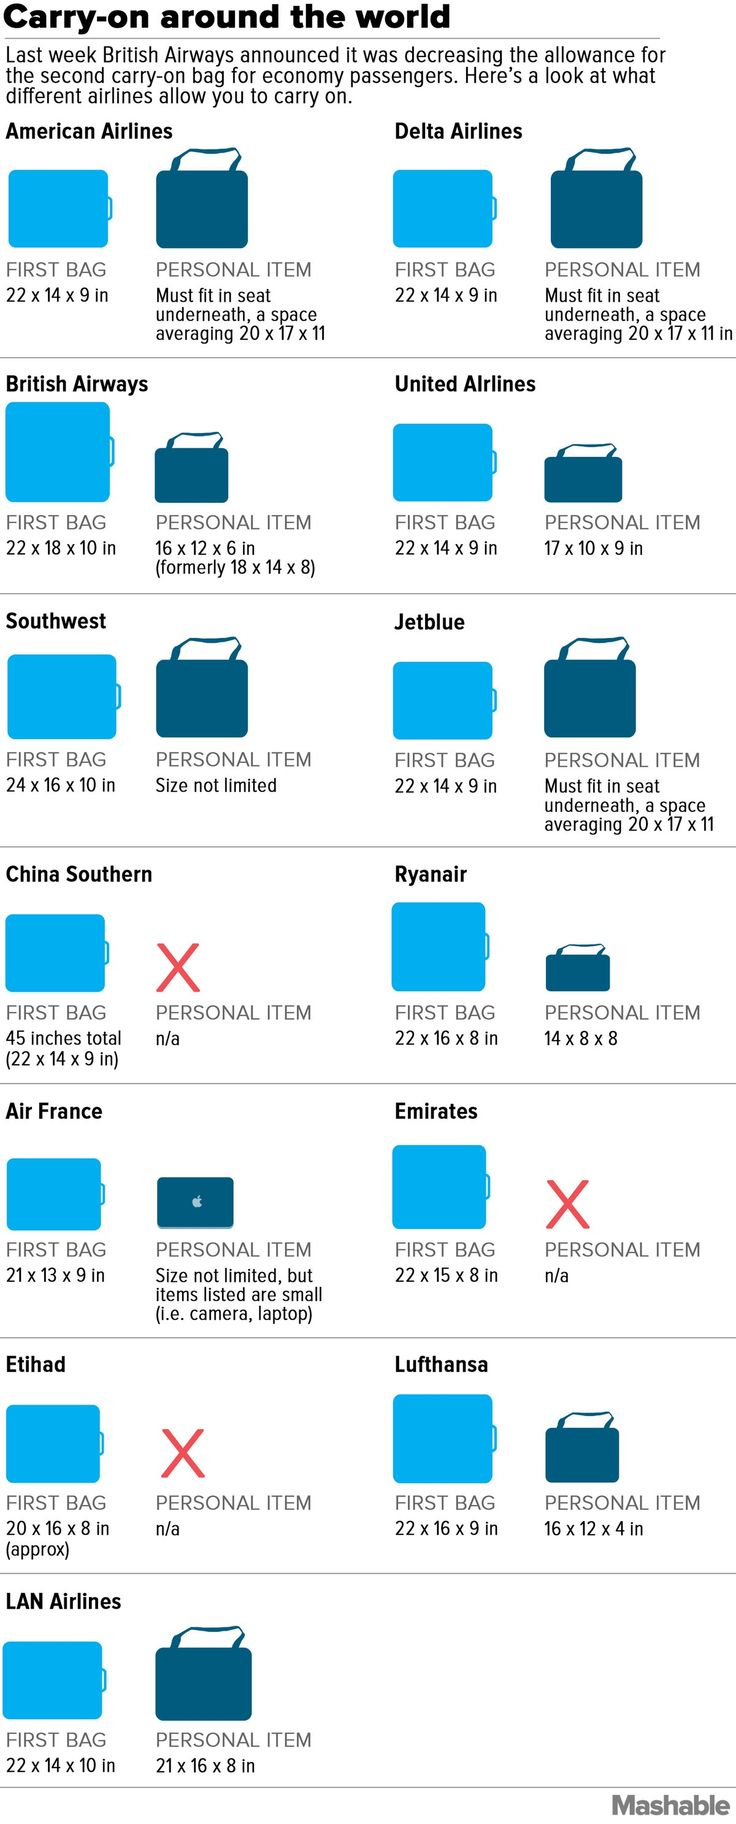 Check out the carry-on size guide before your next flight.